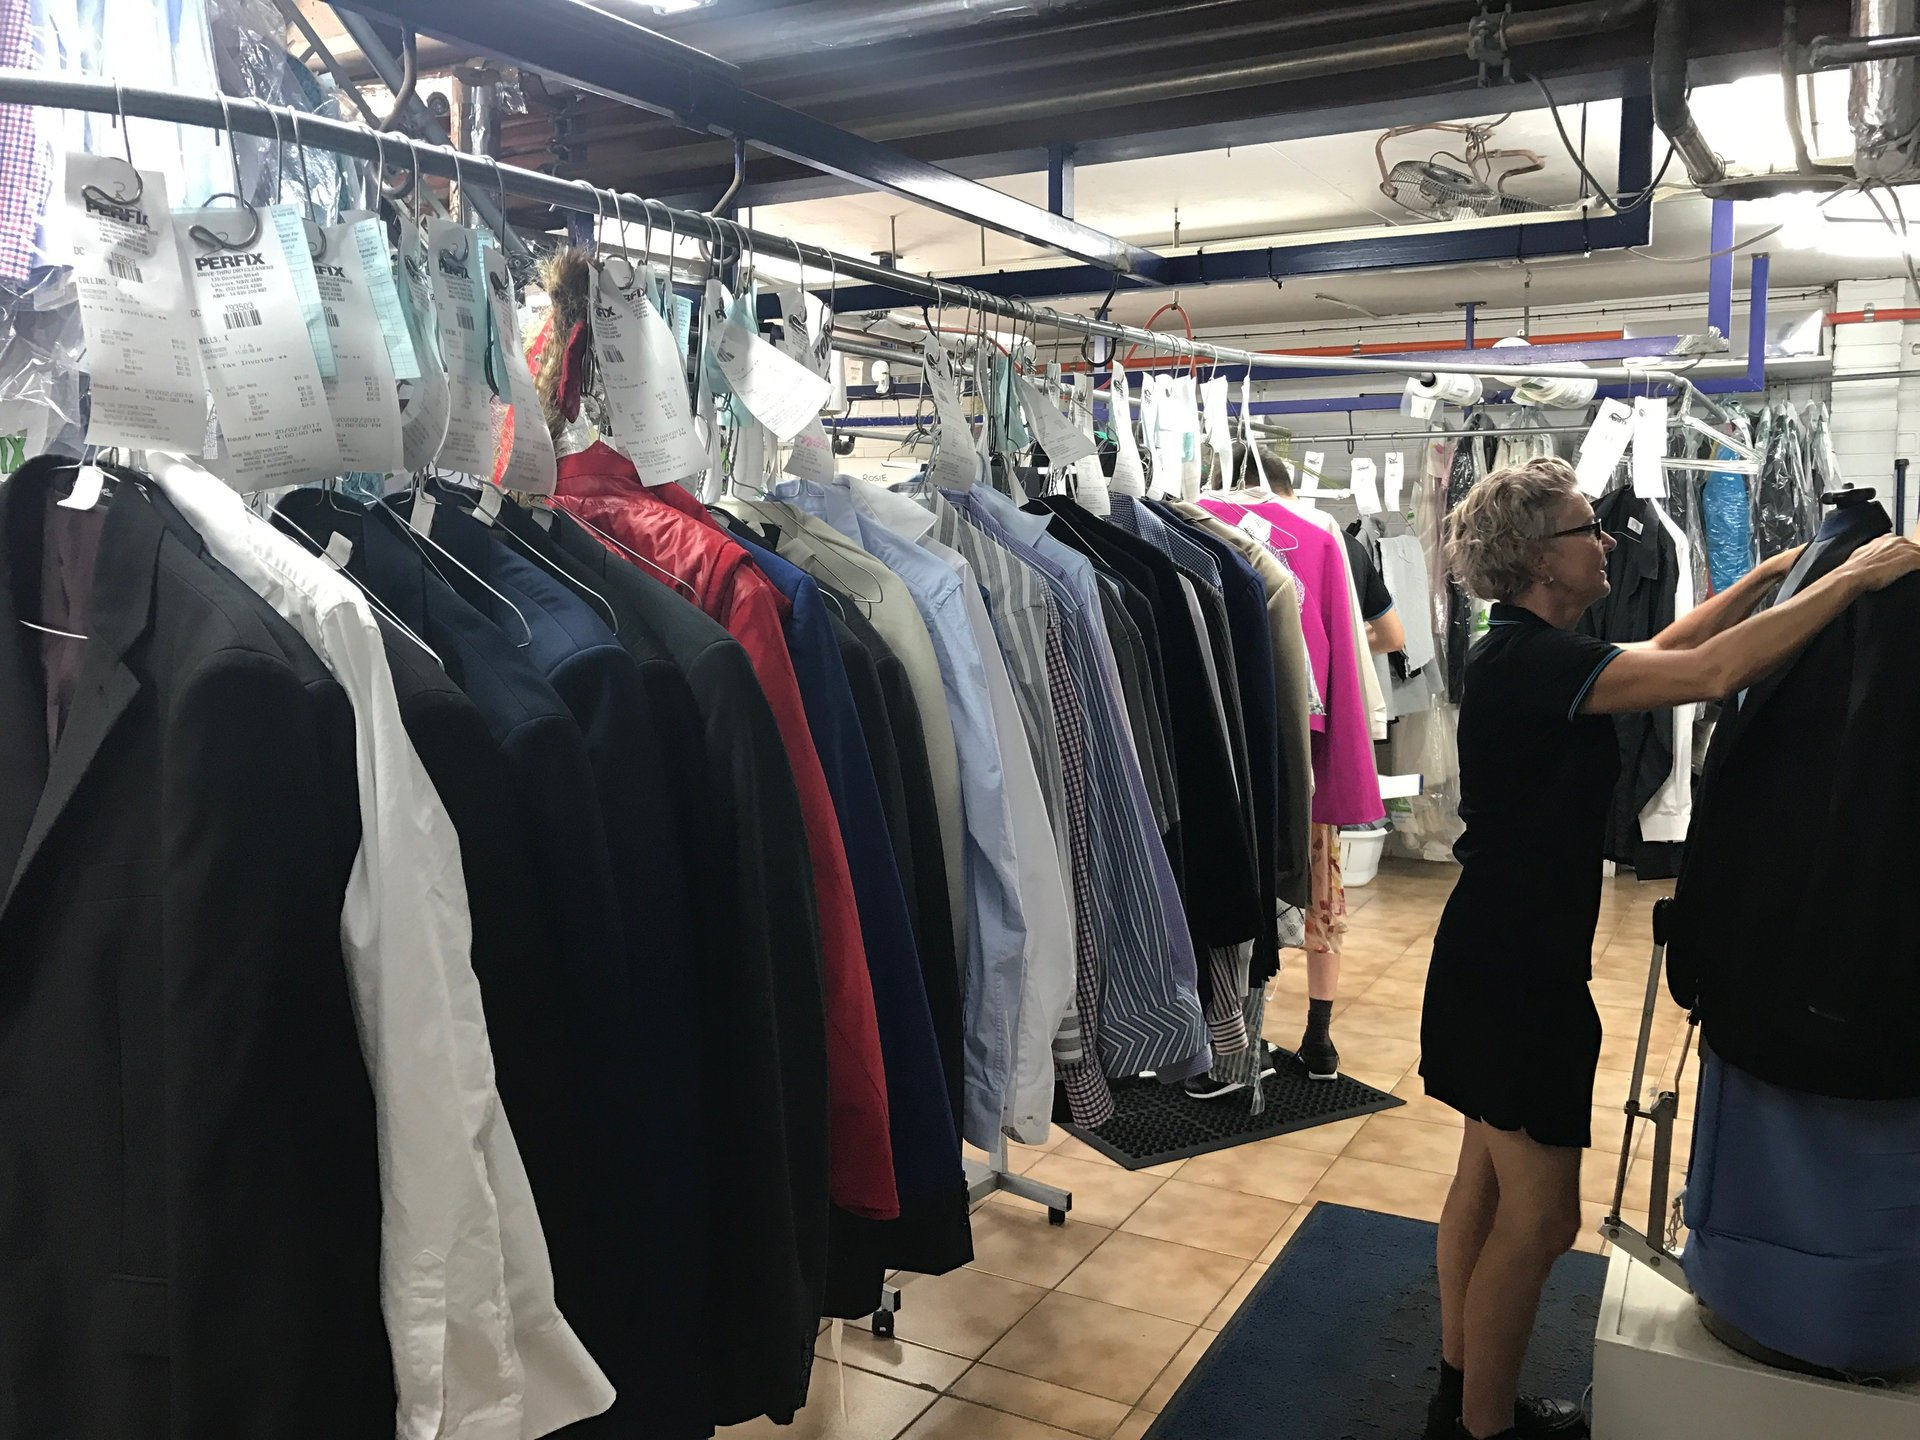 Pressing - Perfix Drycleaners Lismore